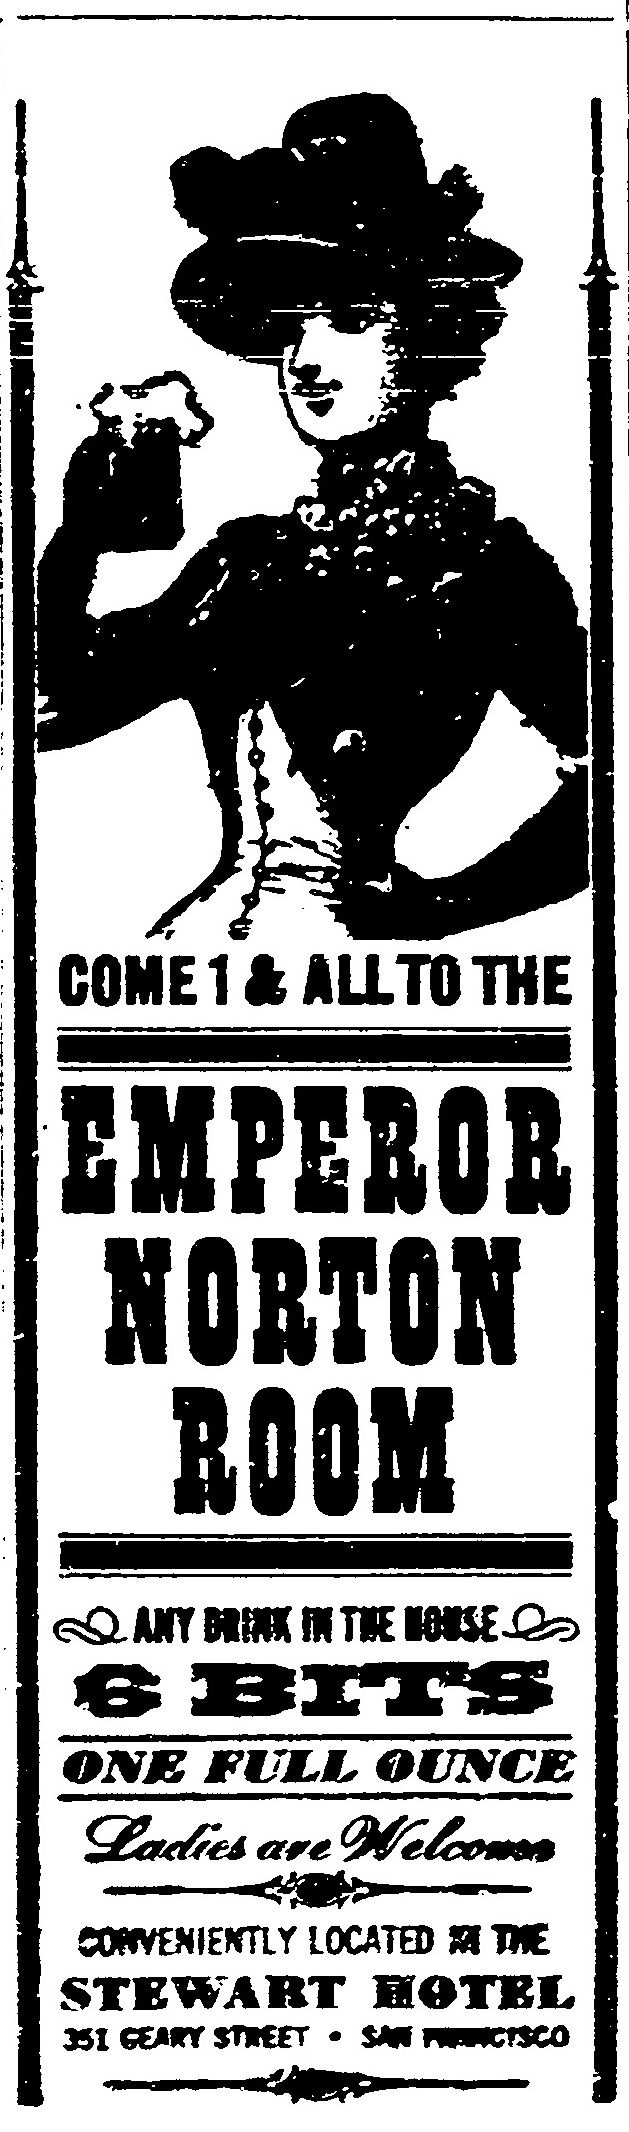 Ad for the Emperor Norton Room at the Hotel Stewart , 351 Geary Street, San Francisco.  San Francisco Chronicle , 15 July 1961, p.9. Source: San Francisco Public Library.